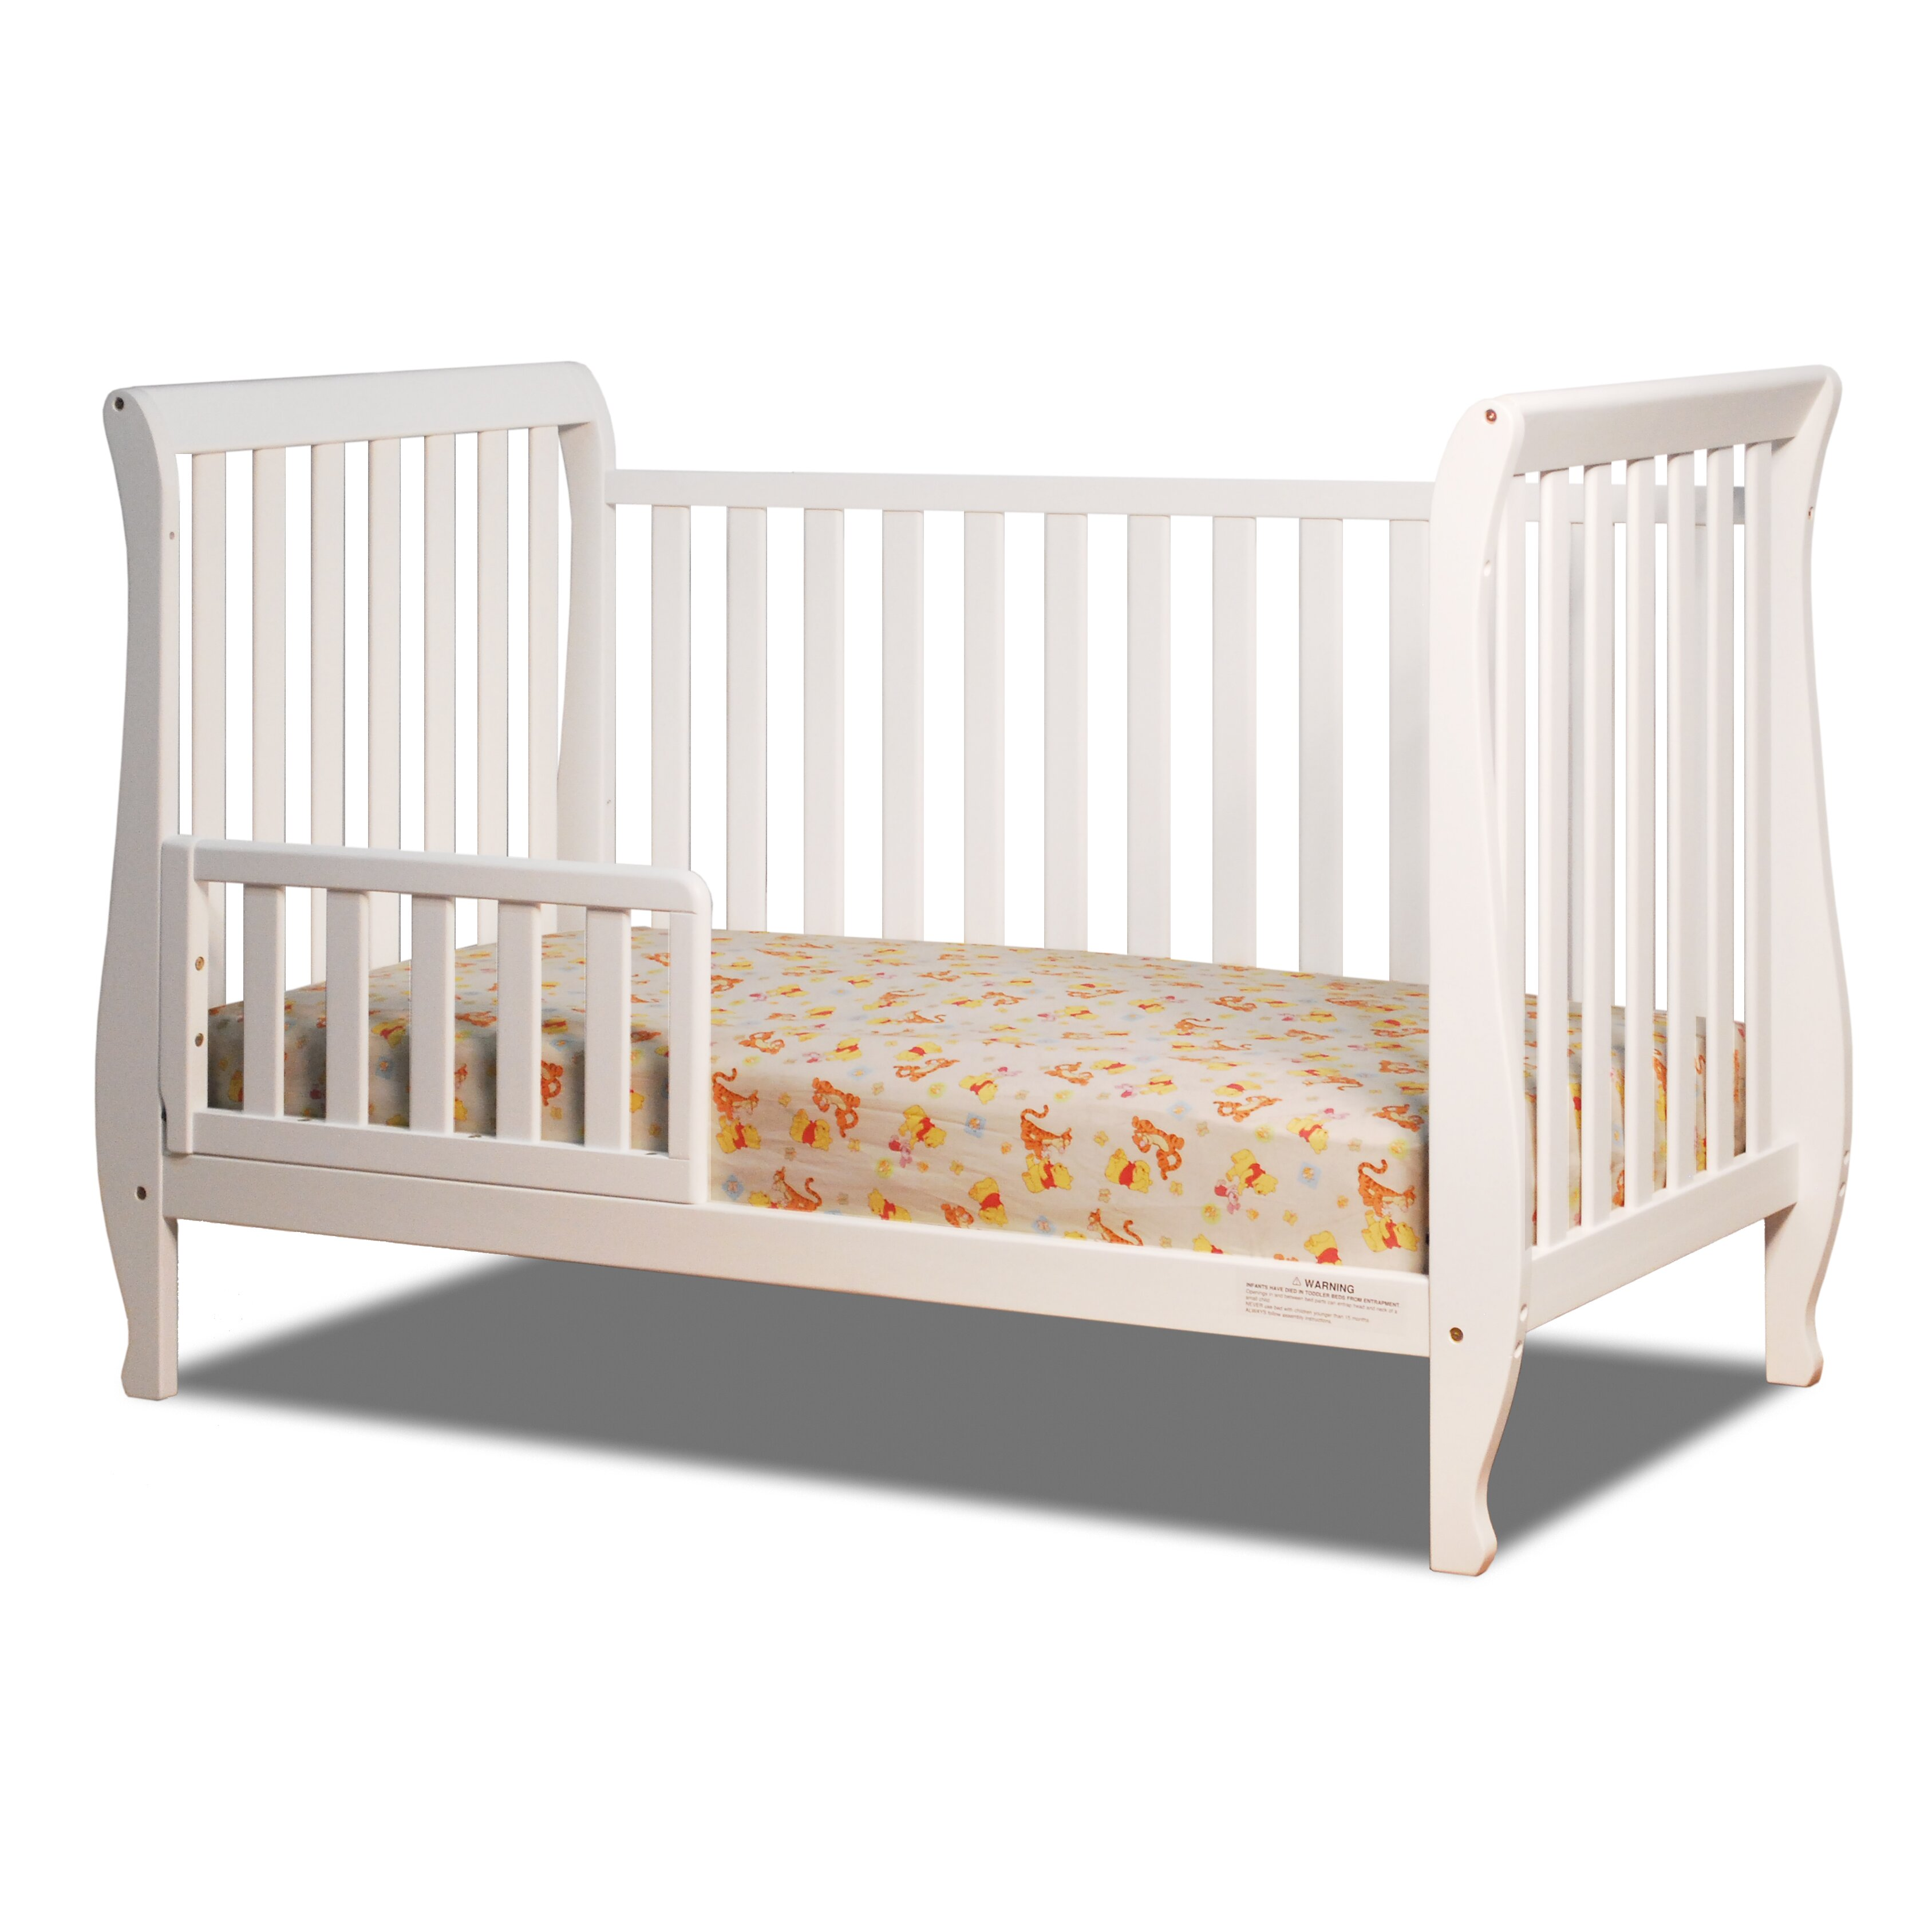 Convertible Crib Instructions Toddler Bed Creative Ideas of Baby